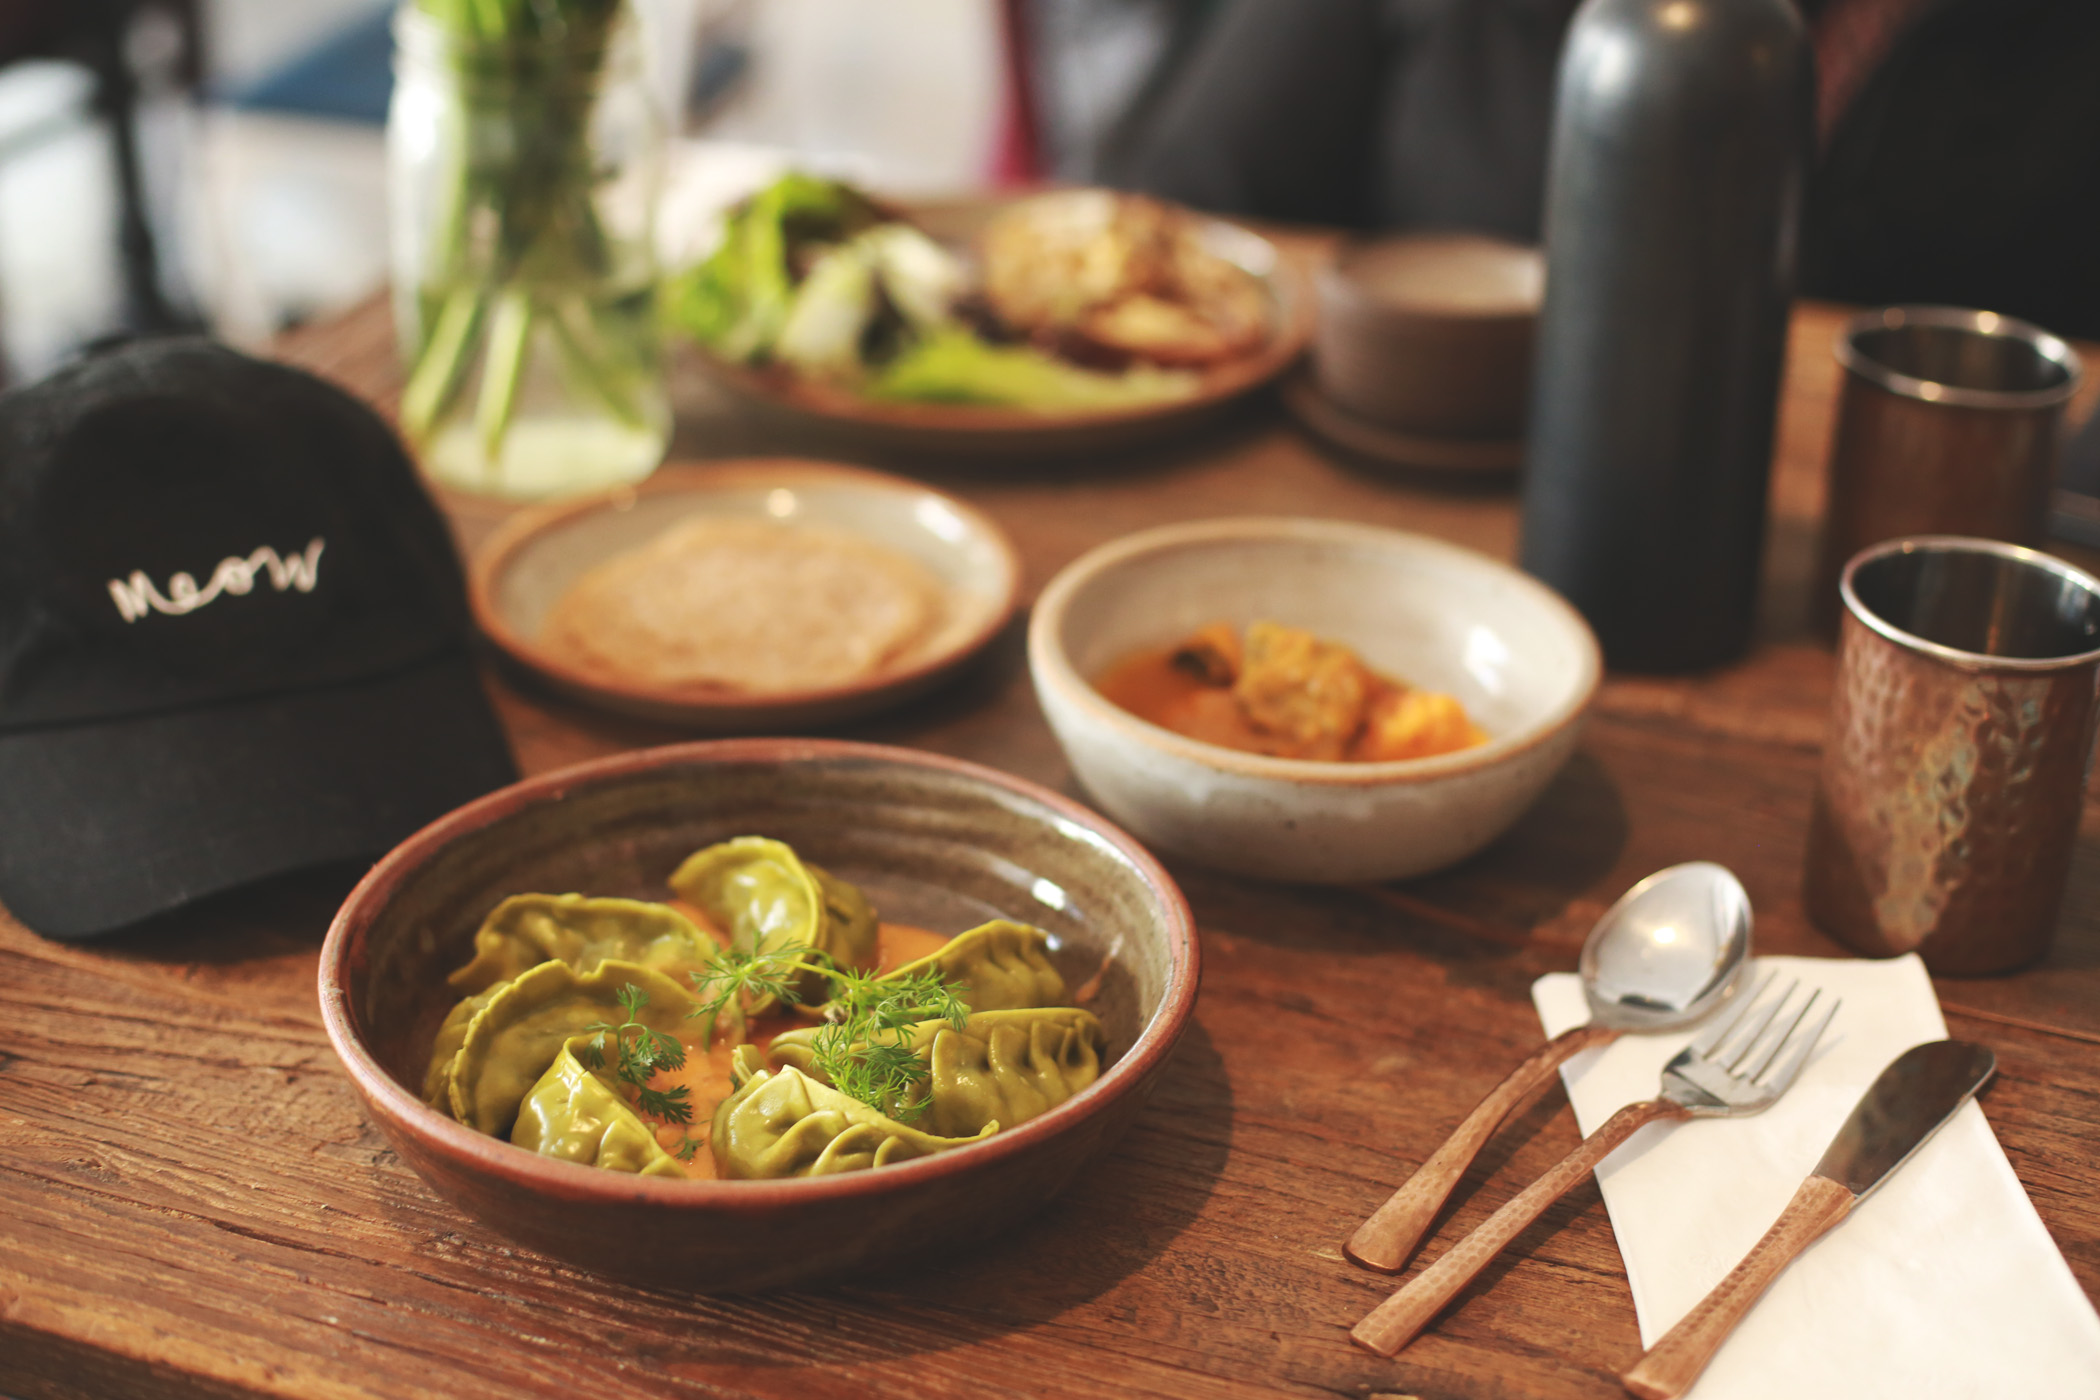 Behind the momos, you can spot the buttercup squash soup, served with toasted wild chives and buckwheat crepes.